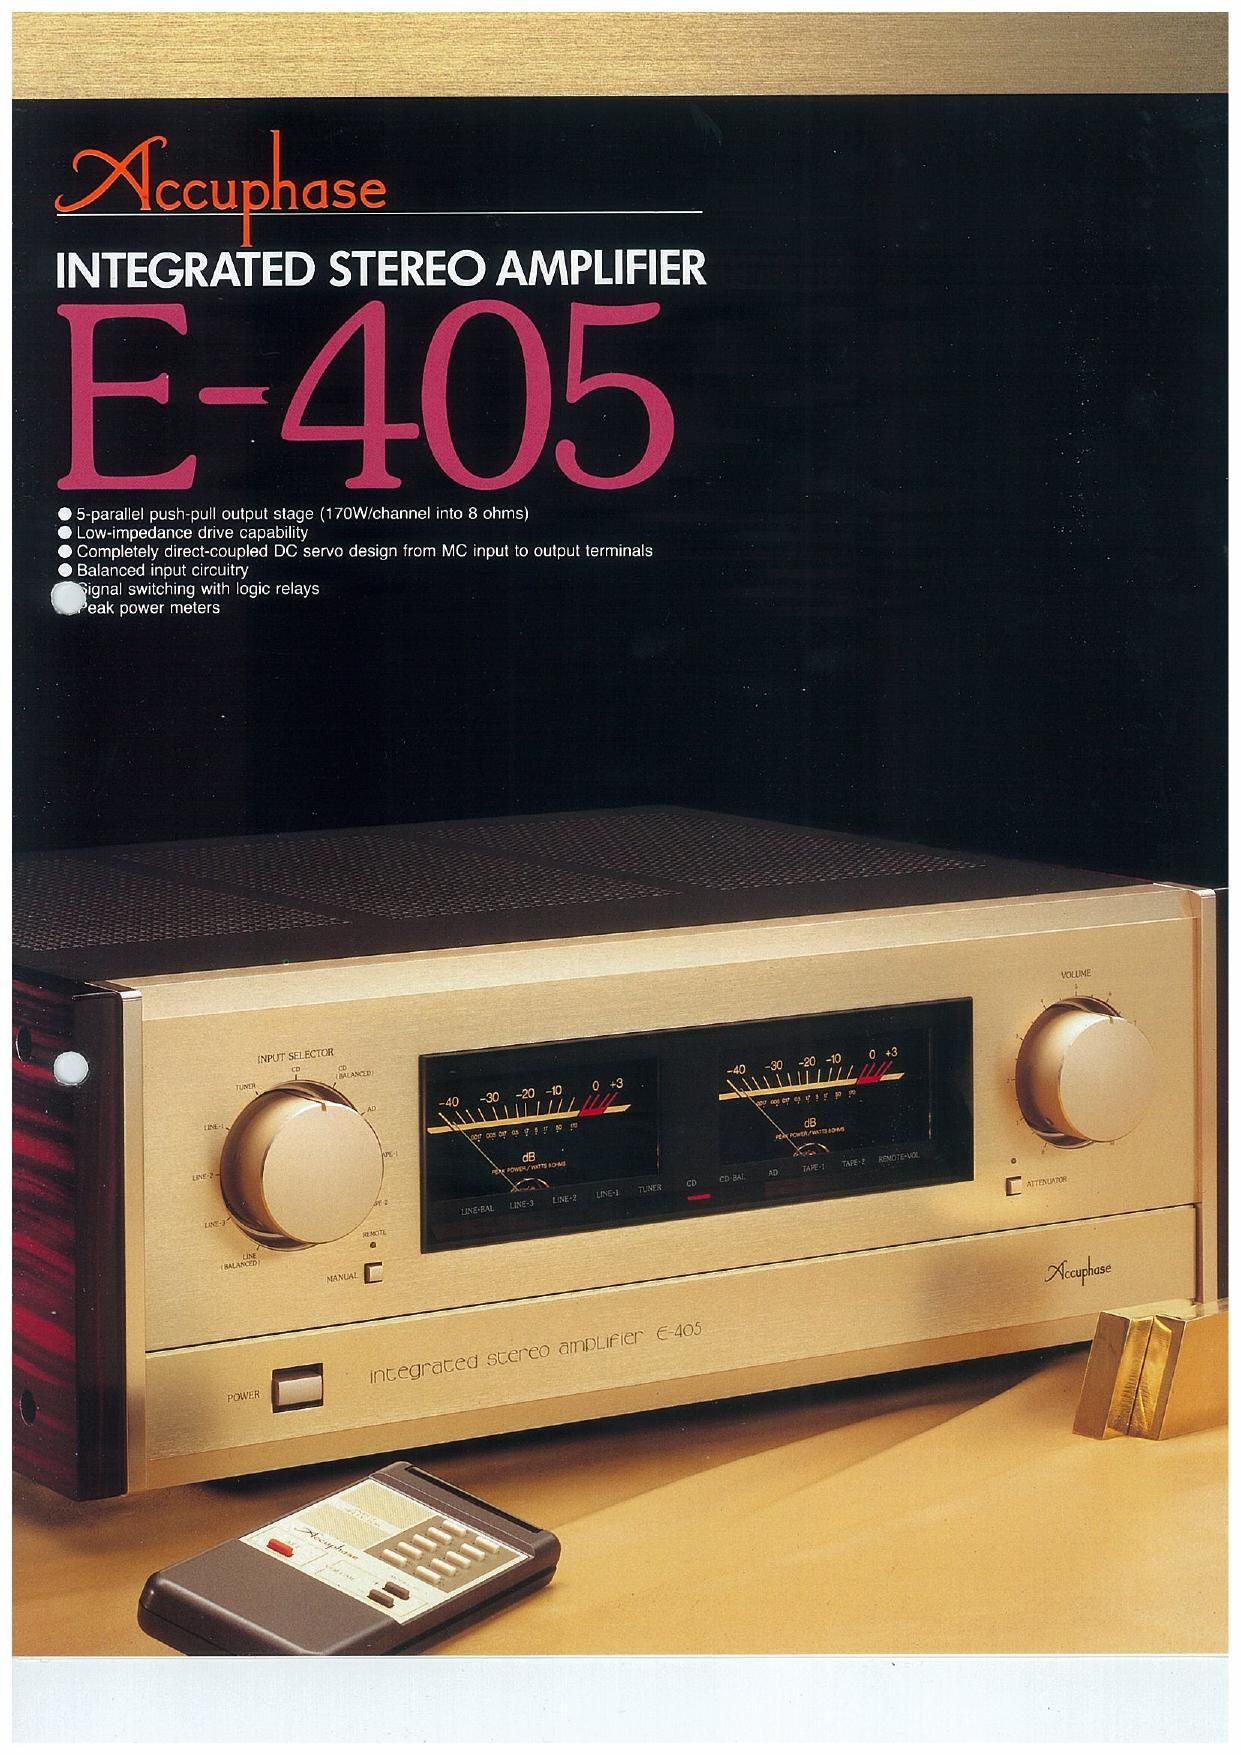 Accuphase E 405 Brochure